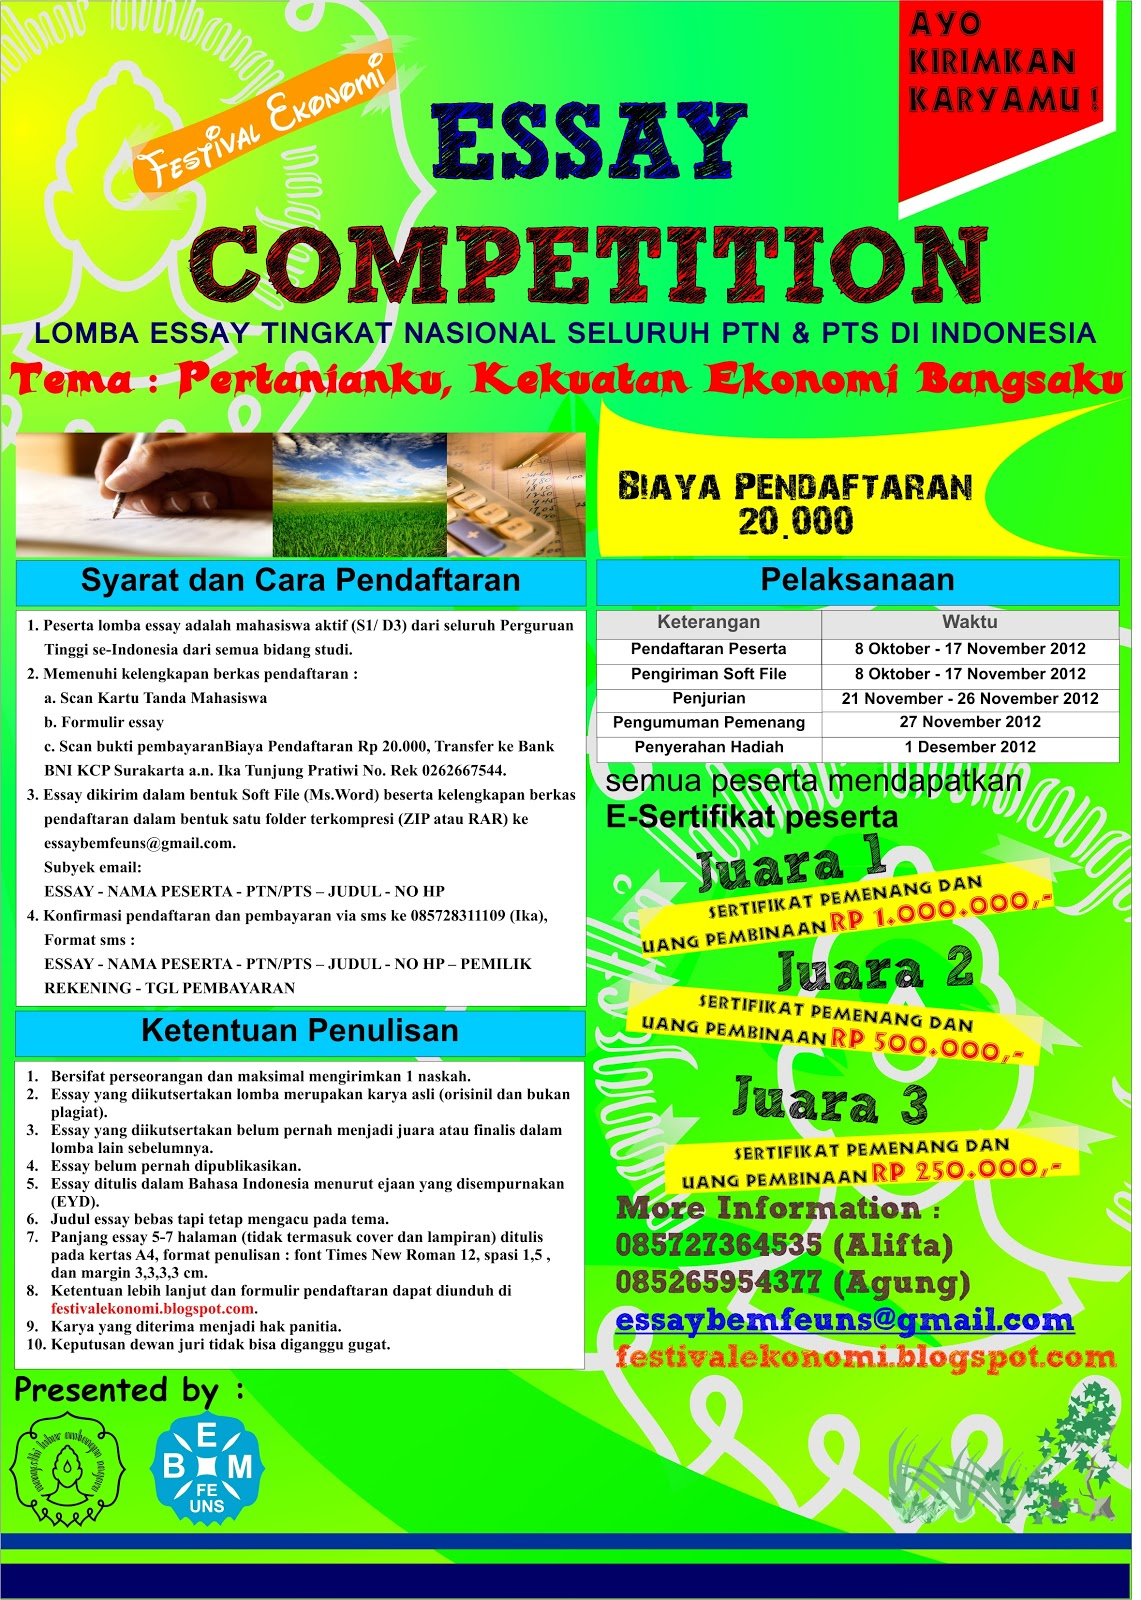 National legal essay writing competition